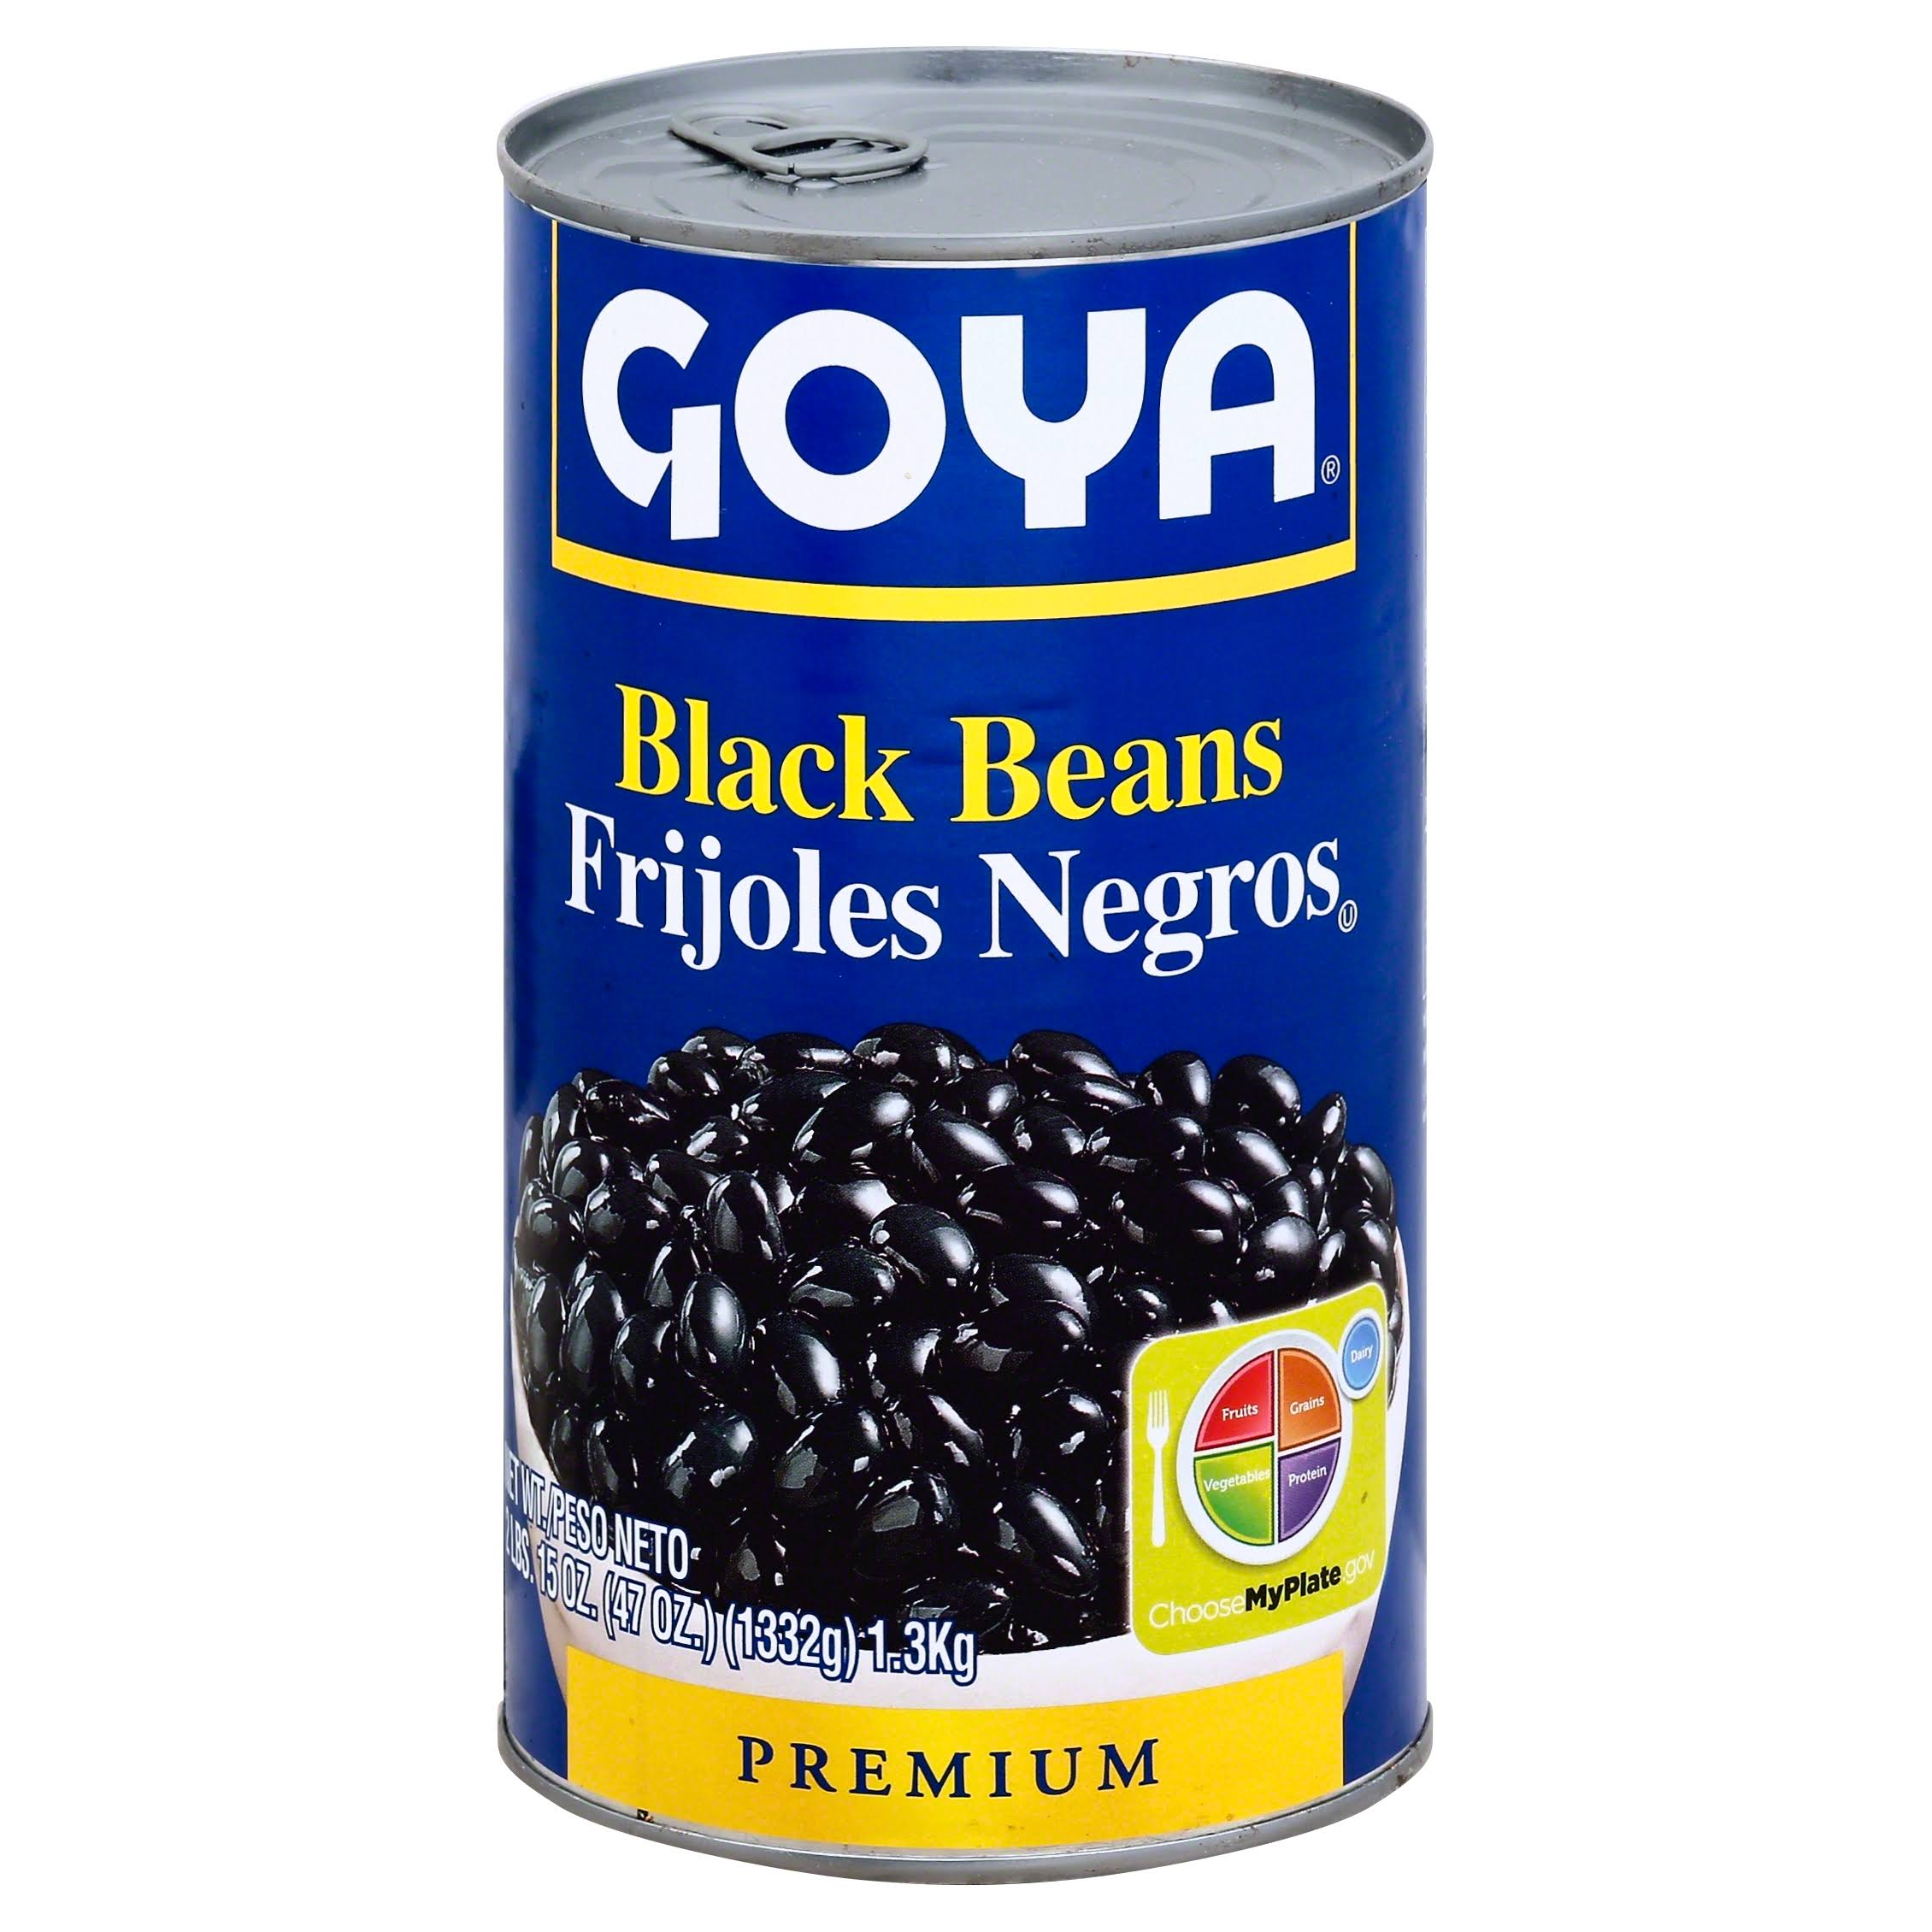 Goya Black Beans - 47oz, Pack of 12